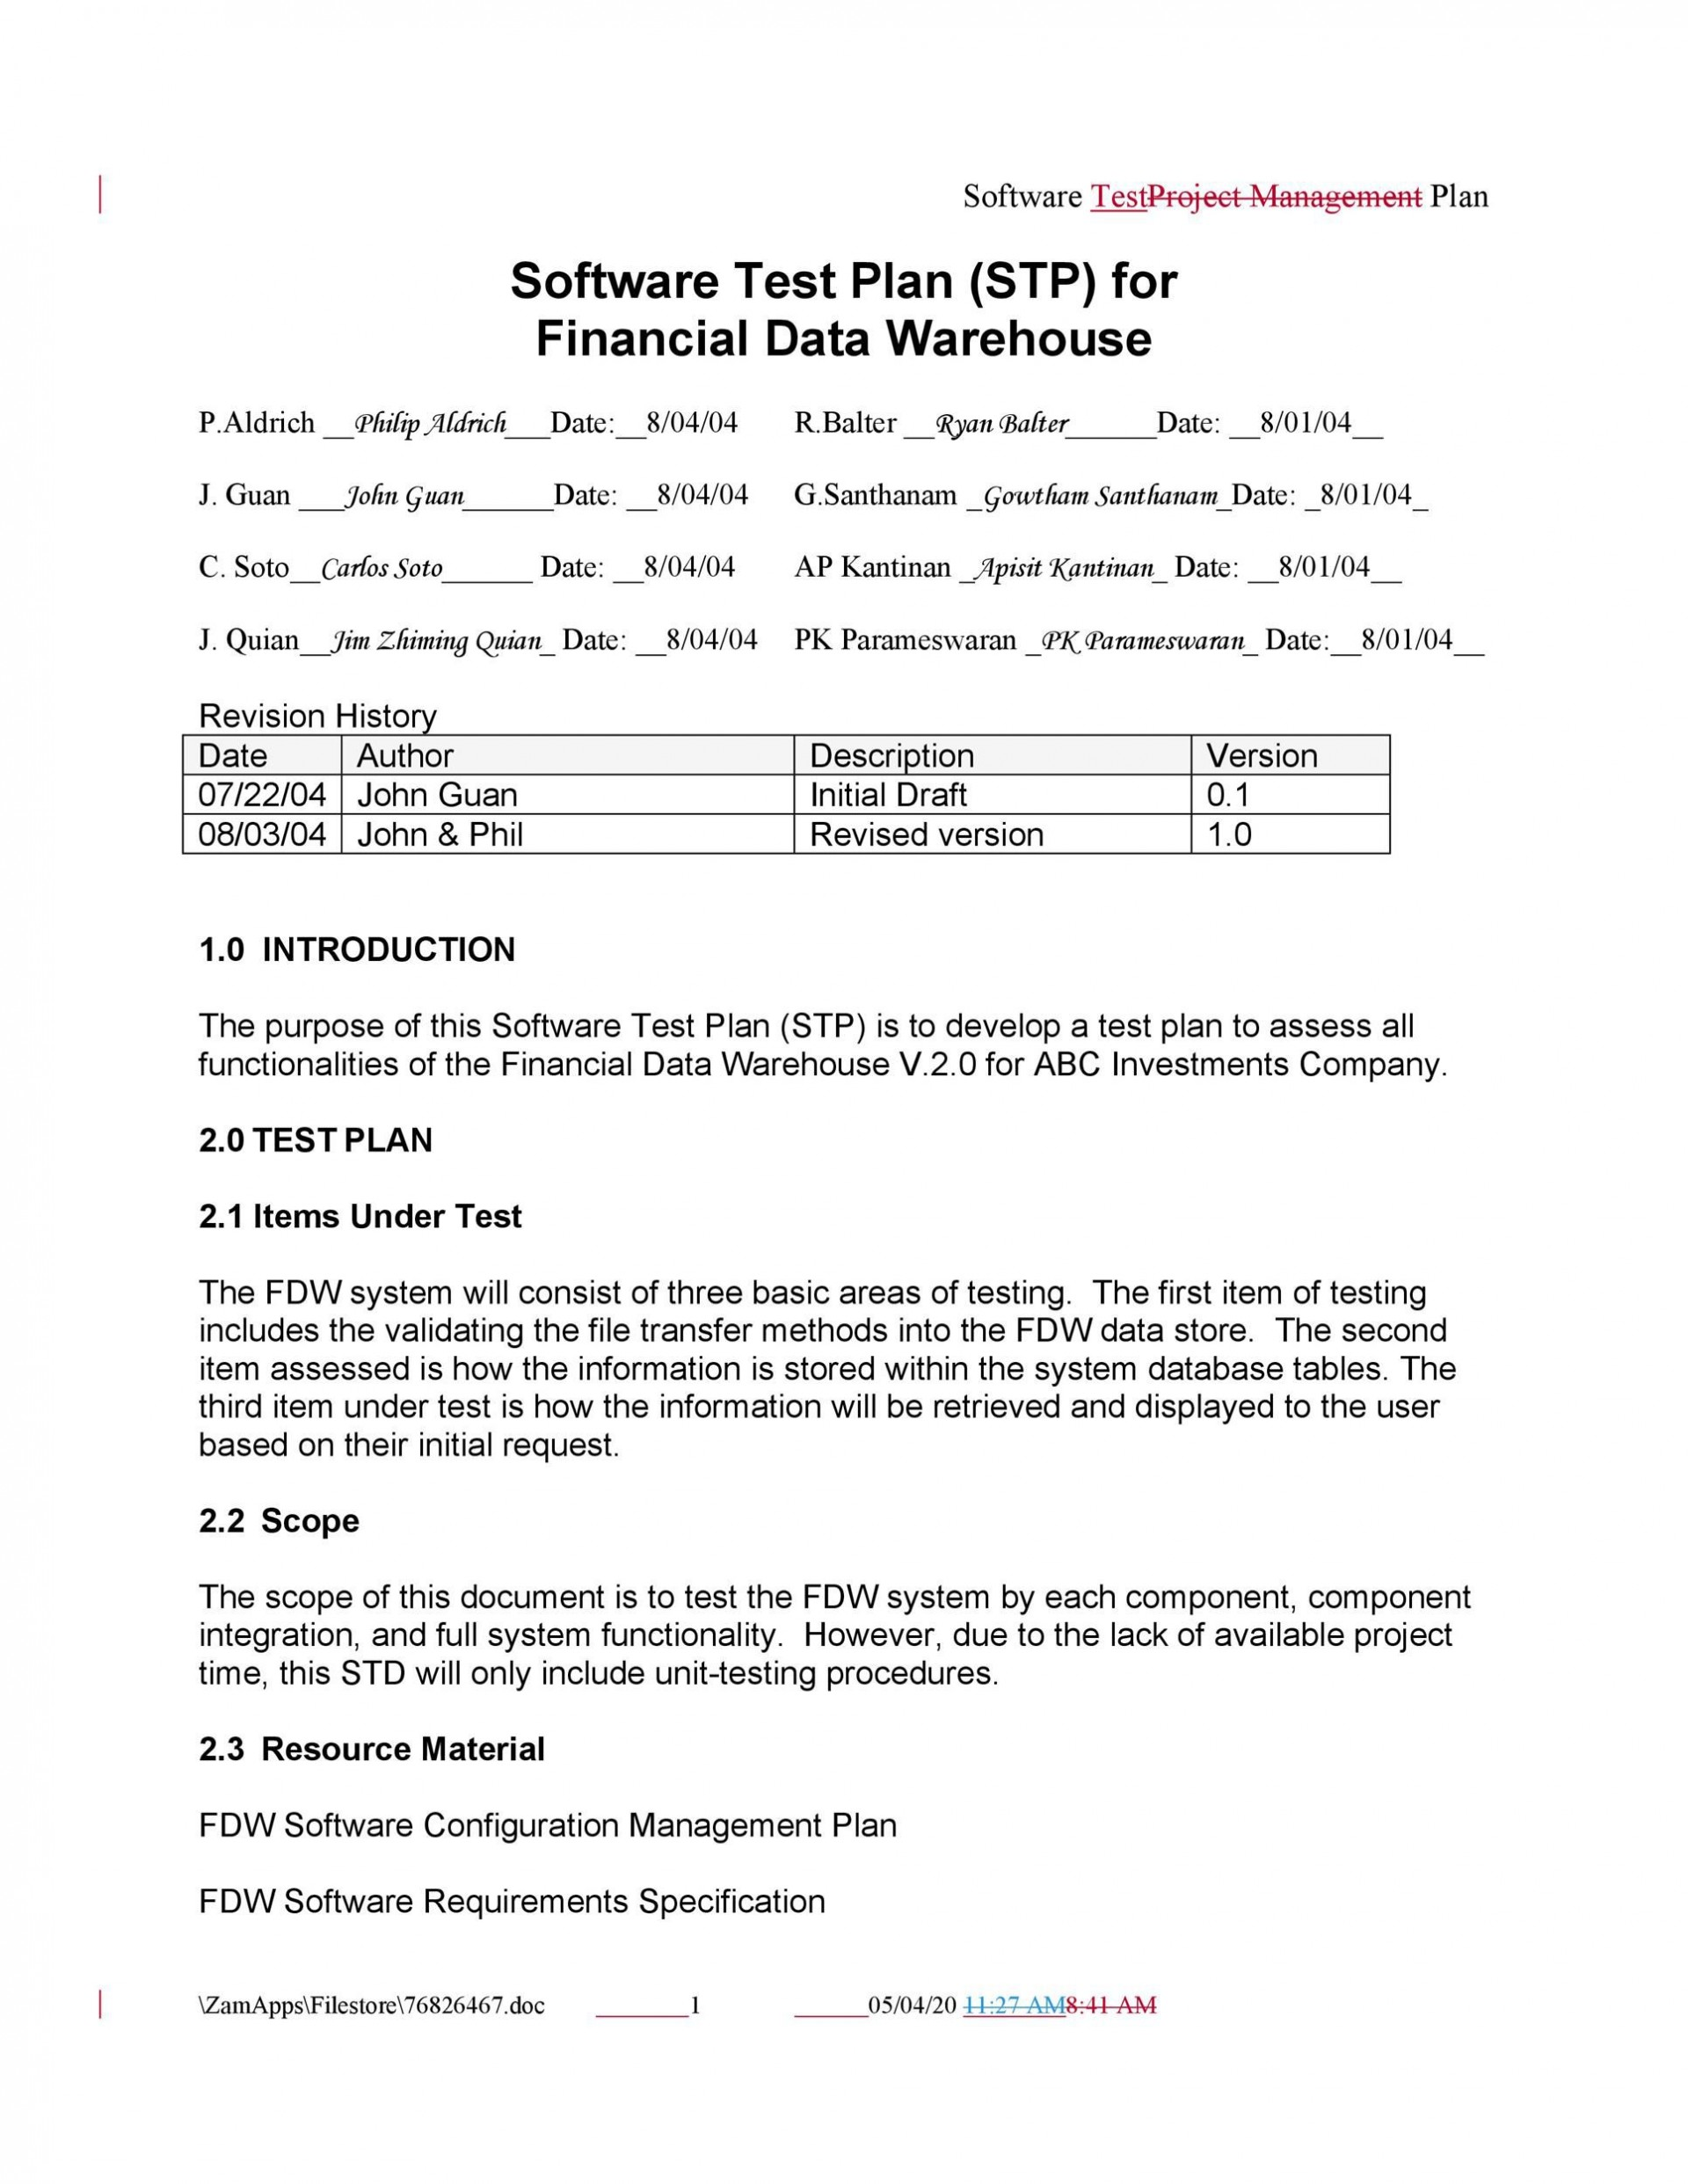 006 Awesome Software Testing Plan Template Picture  Test Agile Unit Example Pdf1920